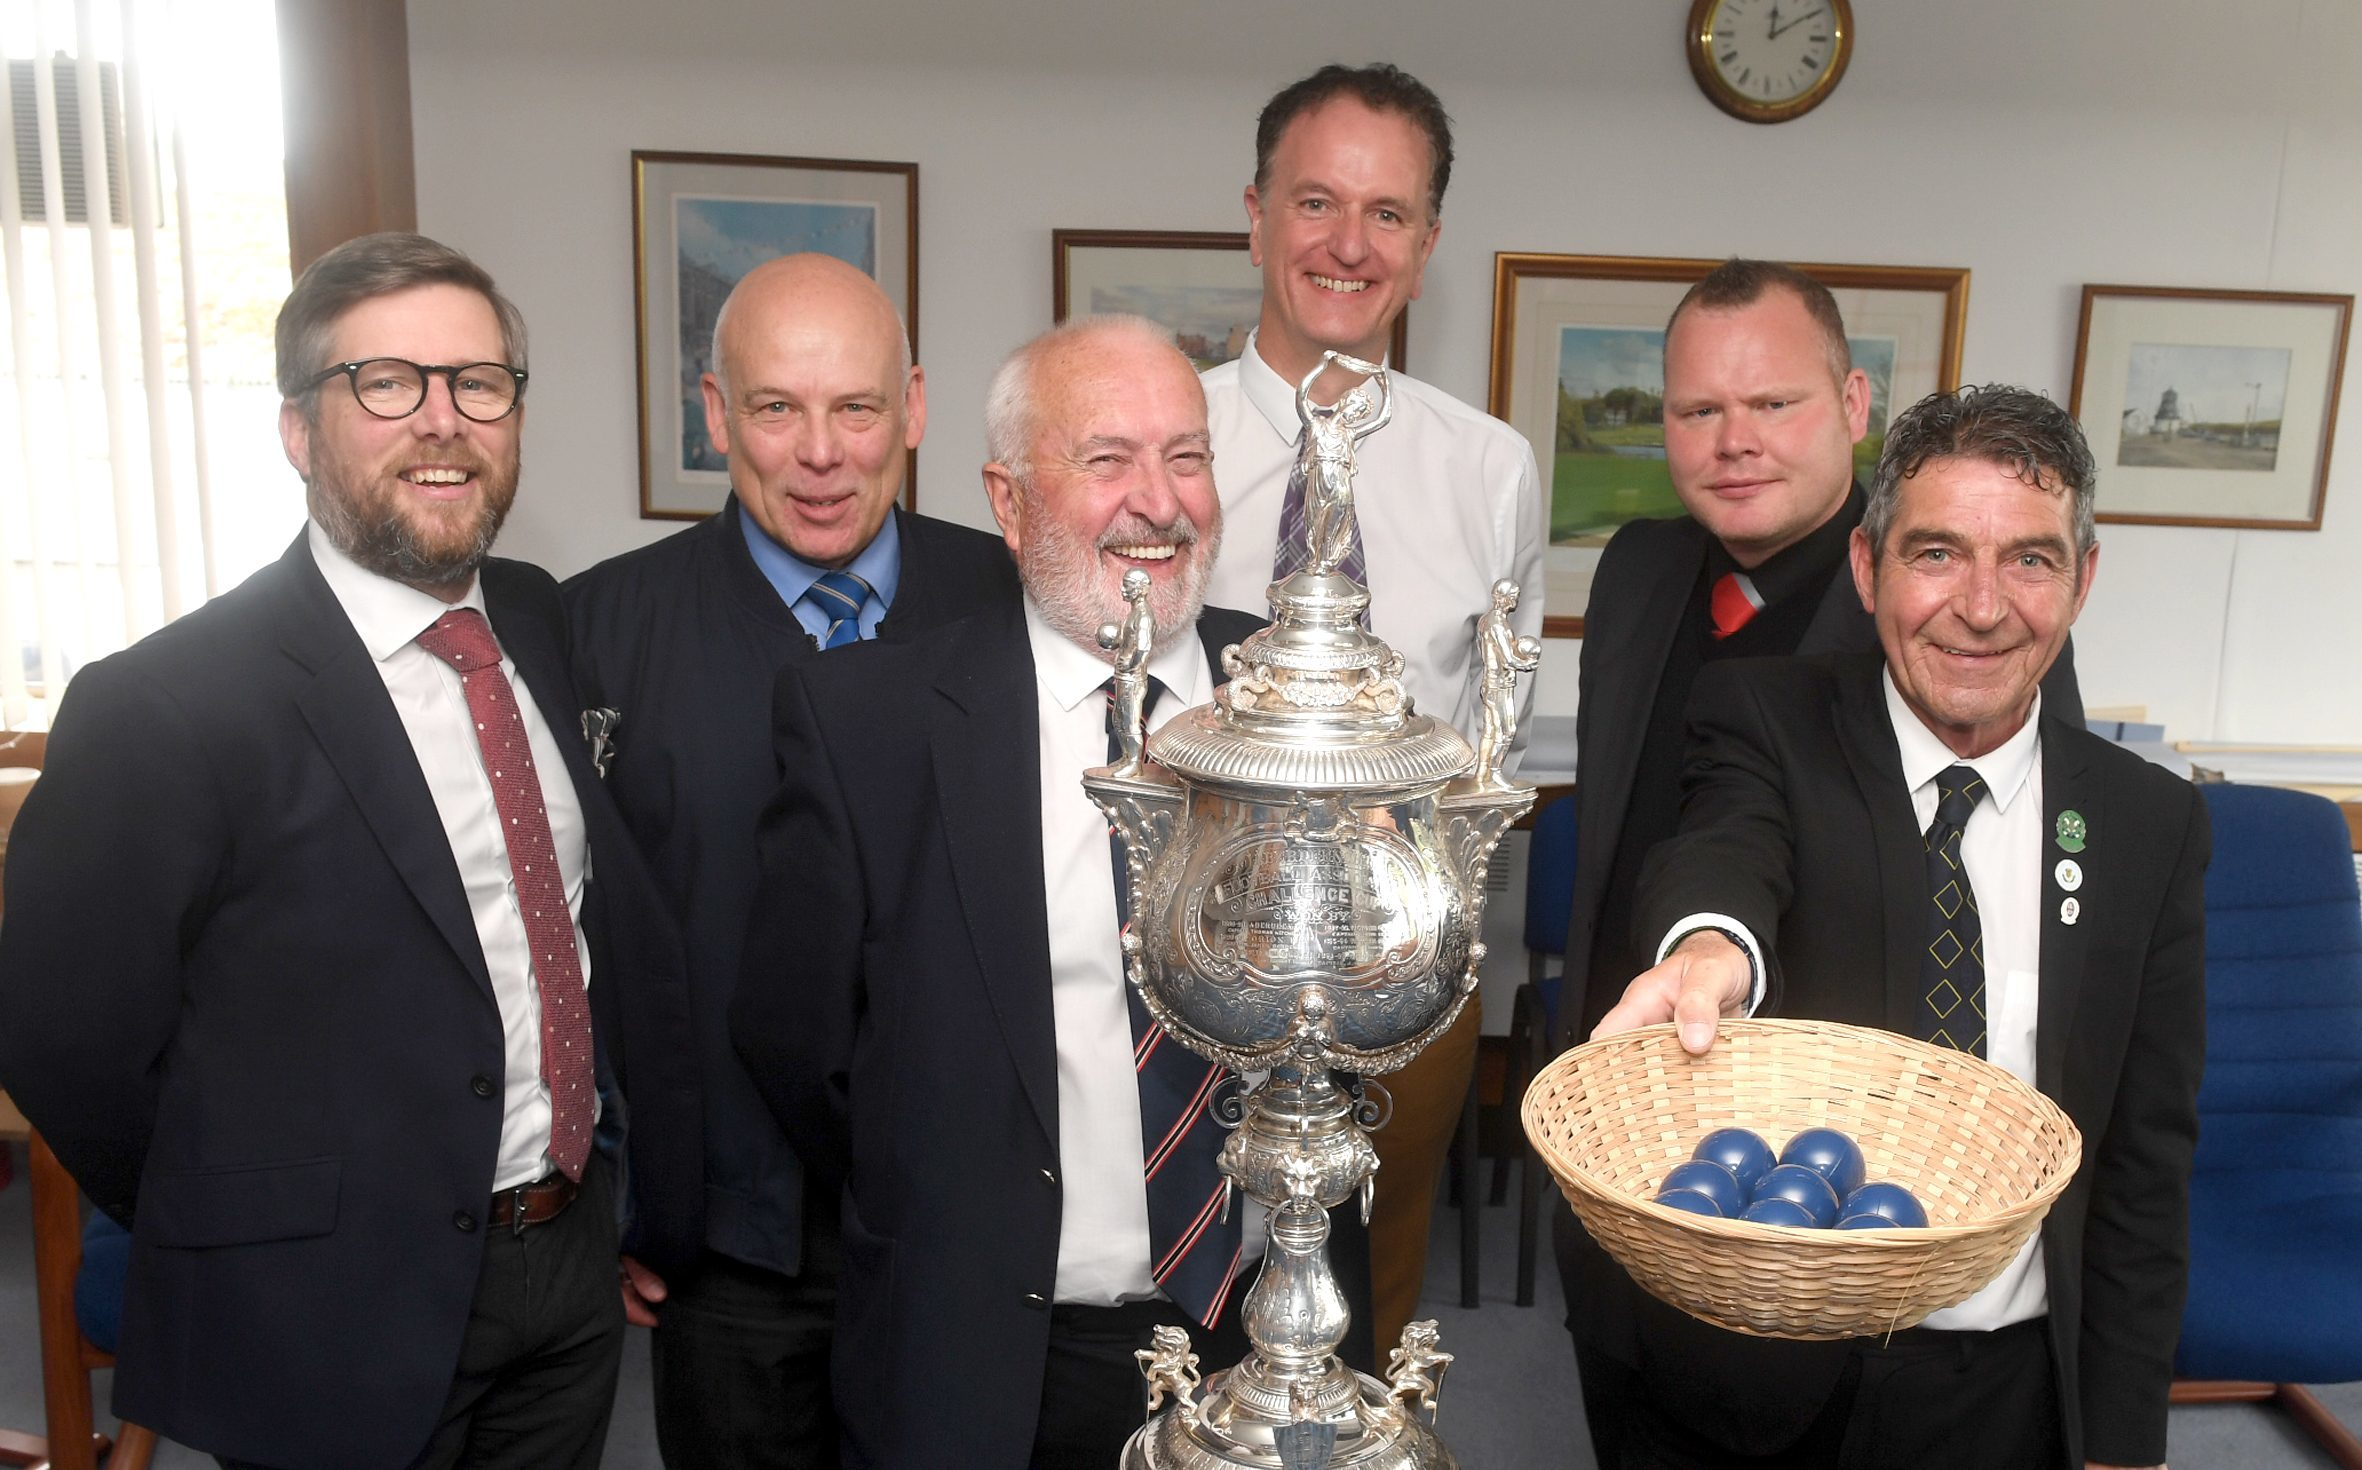 The draw for the 120th Evening Express Aberdeenshire Cup was held at the Aberden Journals today. Pictured from left are Barry Gibb from Inverurie Loco Works FC, Graeme Reid from Cove Rangers FC, George Manson from Turriff United FC, Billy Thomson from Inverurie Loco Works FC, Bryan Braidwood from Formartine United FC and Garry Farquhar cor from Buckie Thistle FC and President of Aberdeenshire and District Football Association. Pic by Chris Sumner.